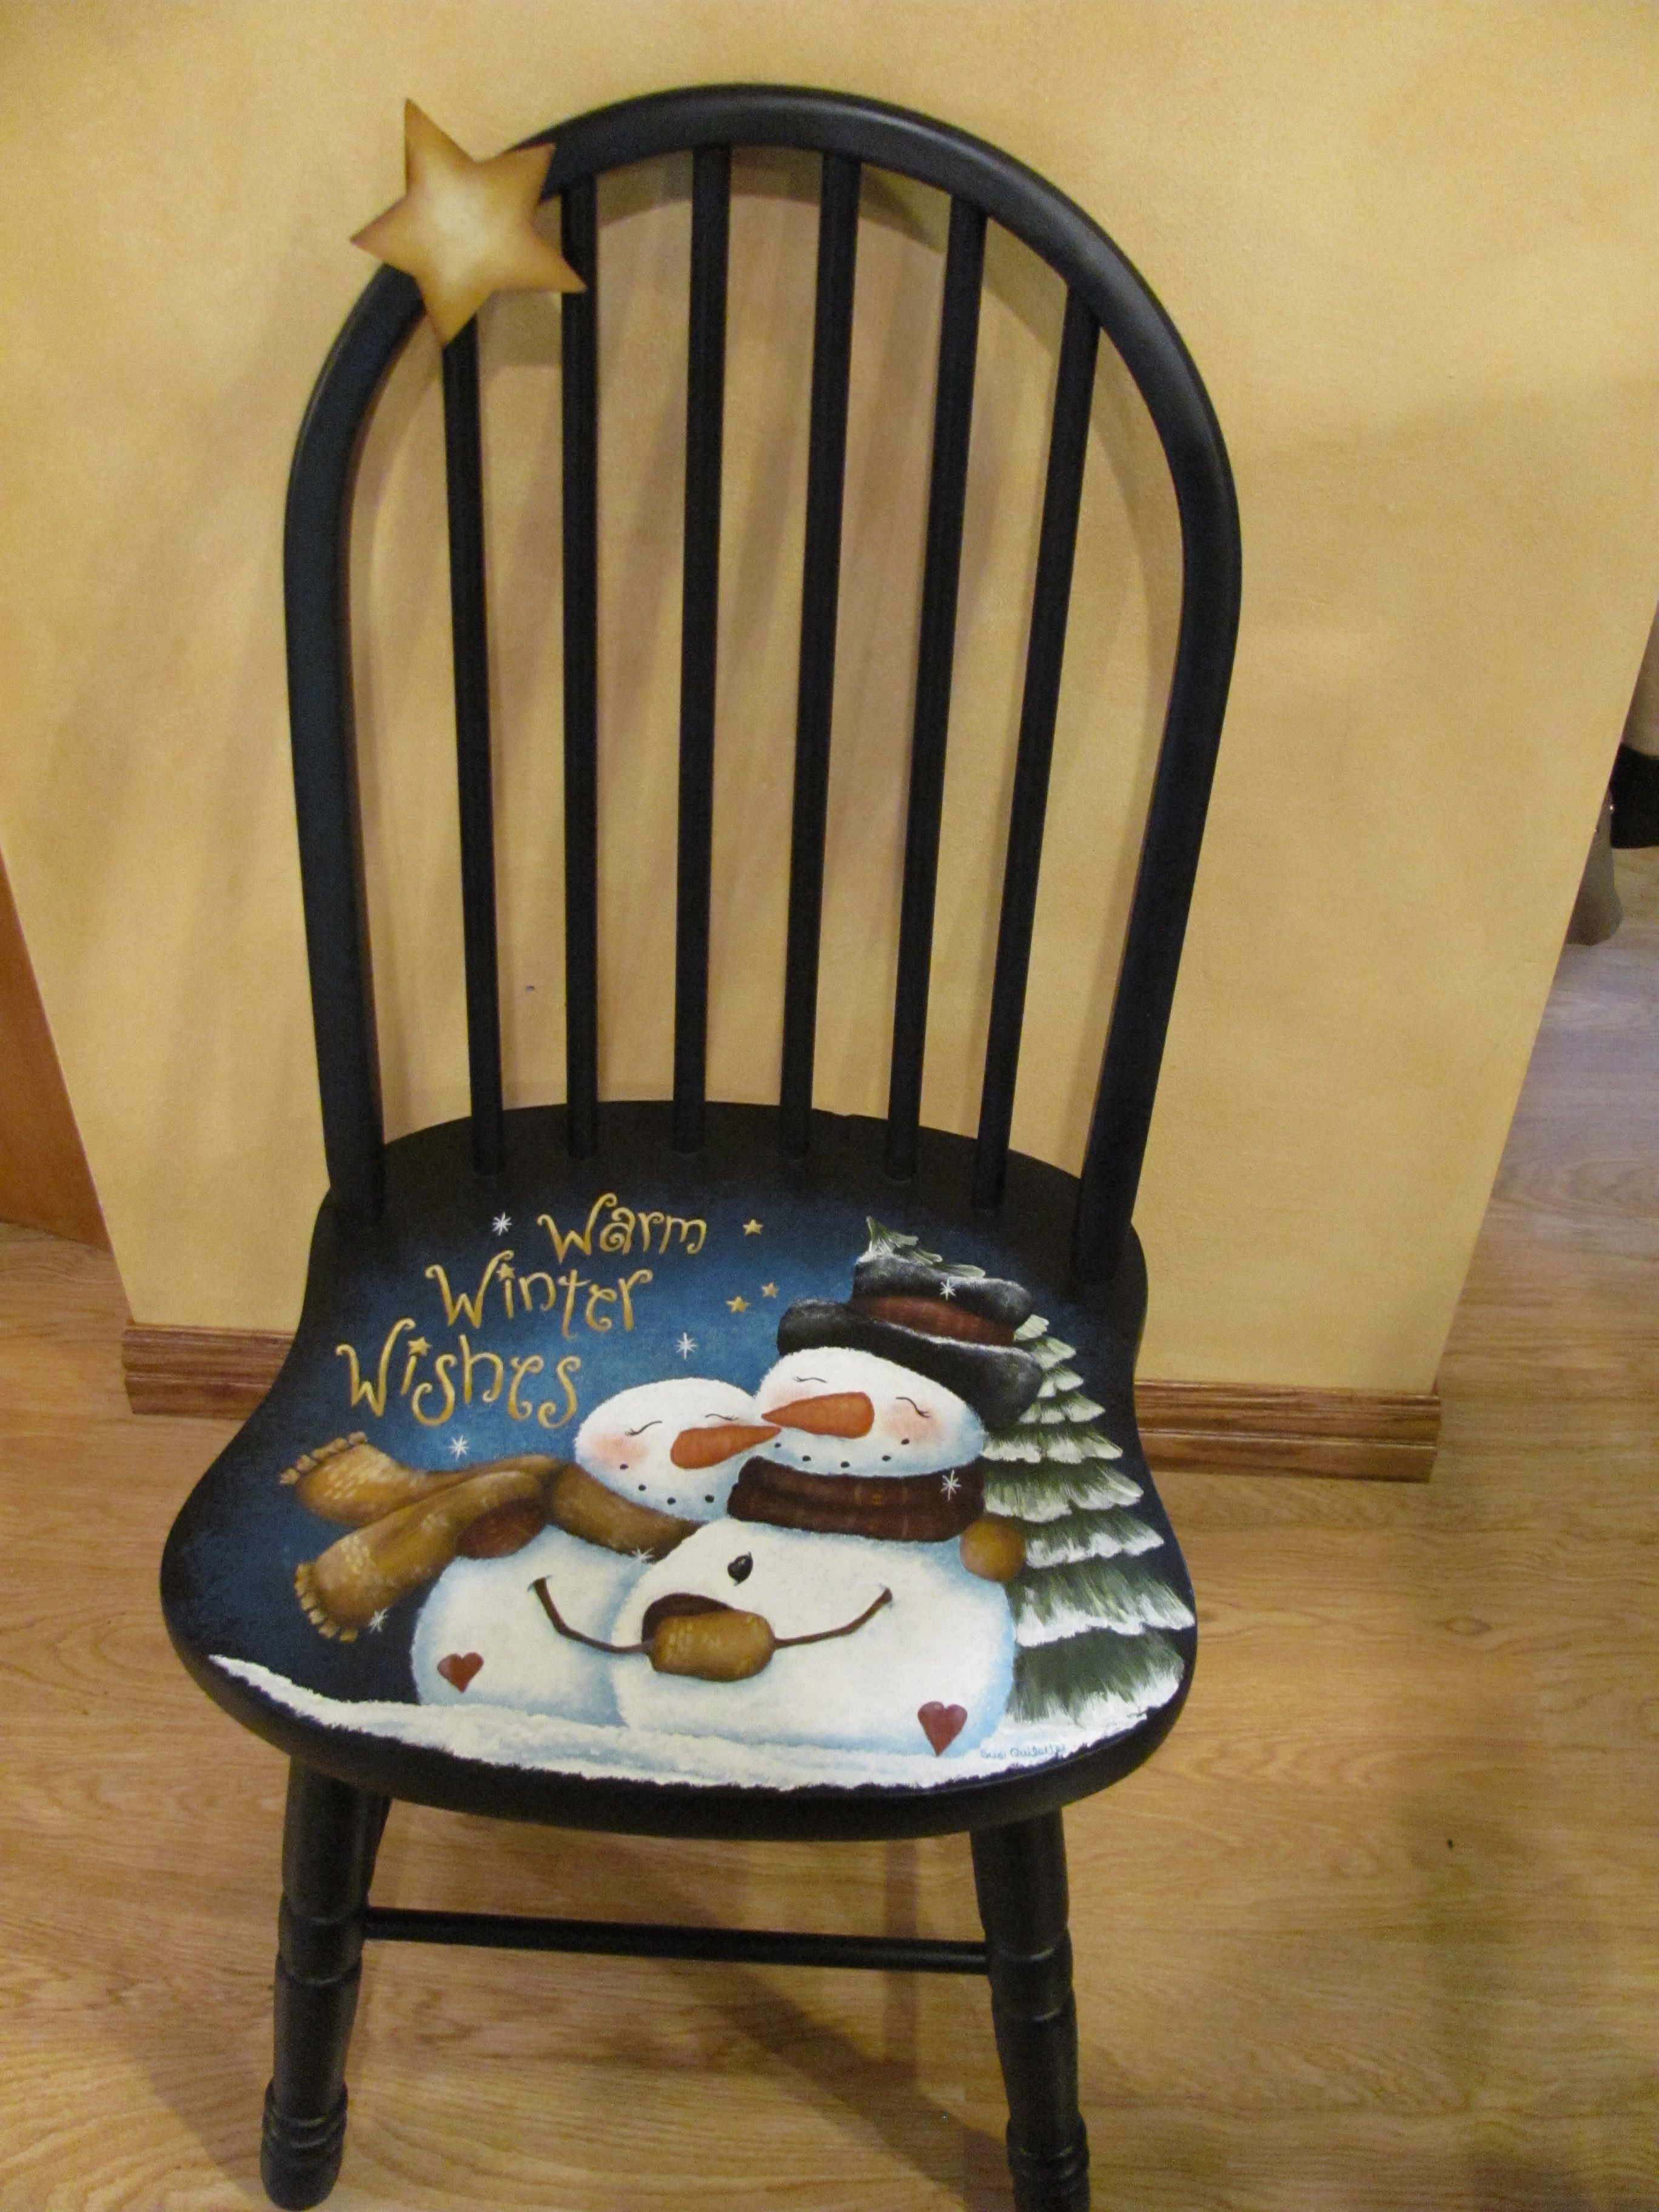 A chair I painted for a fundraiser. Painted items